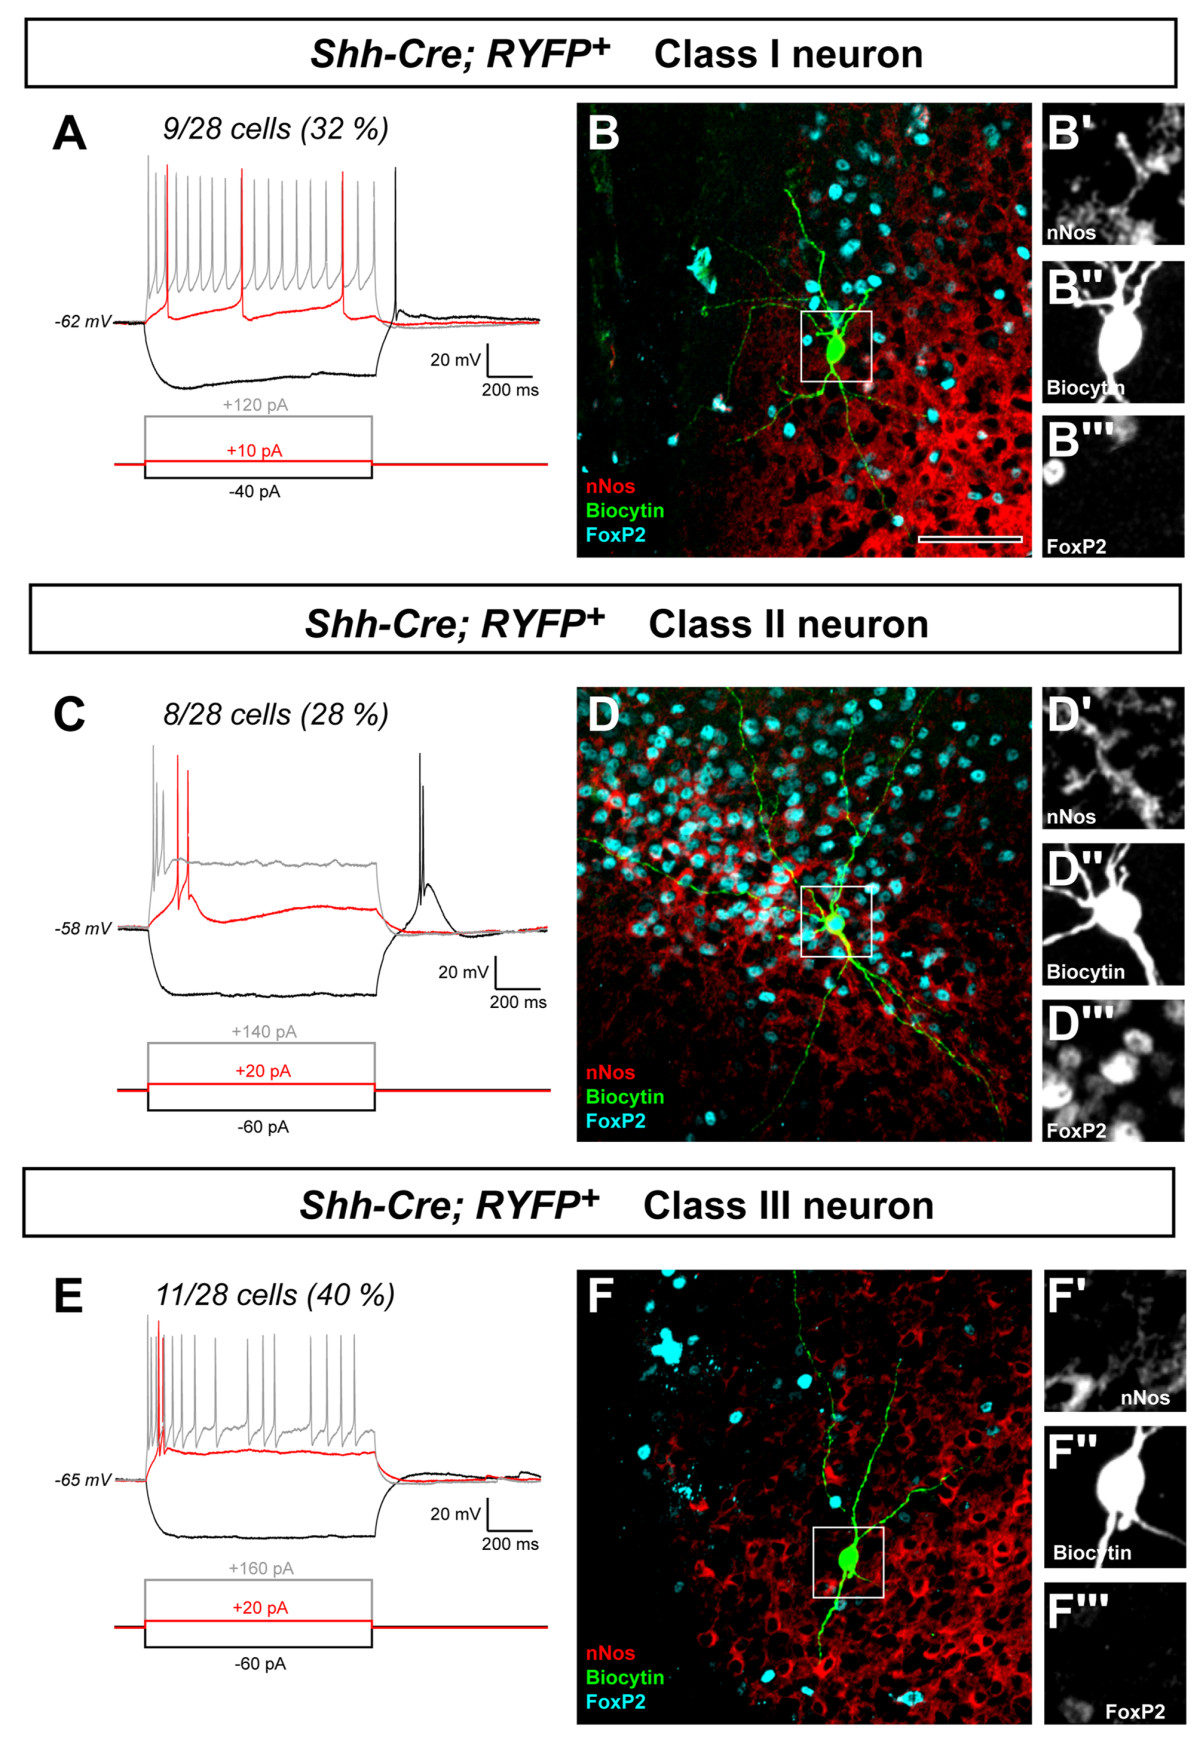 http://static-content.springer.com/image/art%3A10.1186%2F1749-8104-5-14/MediaObjects/13064_2010_Article_126_Fig8_HTML.jpg